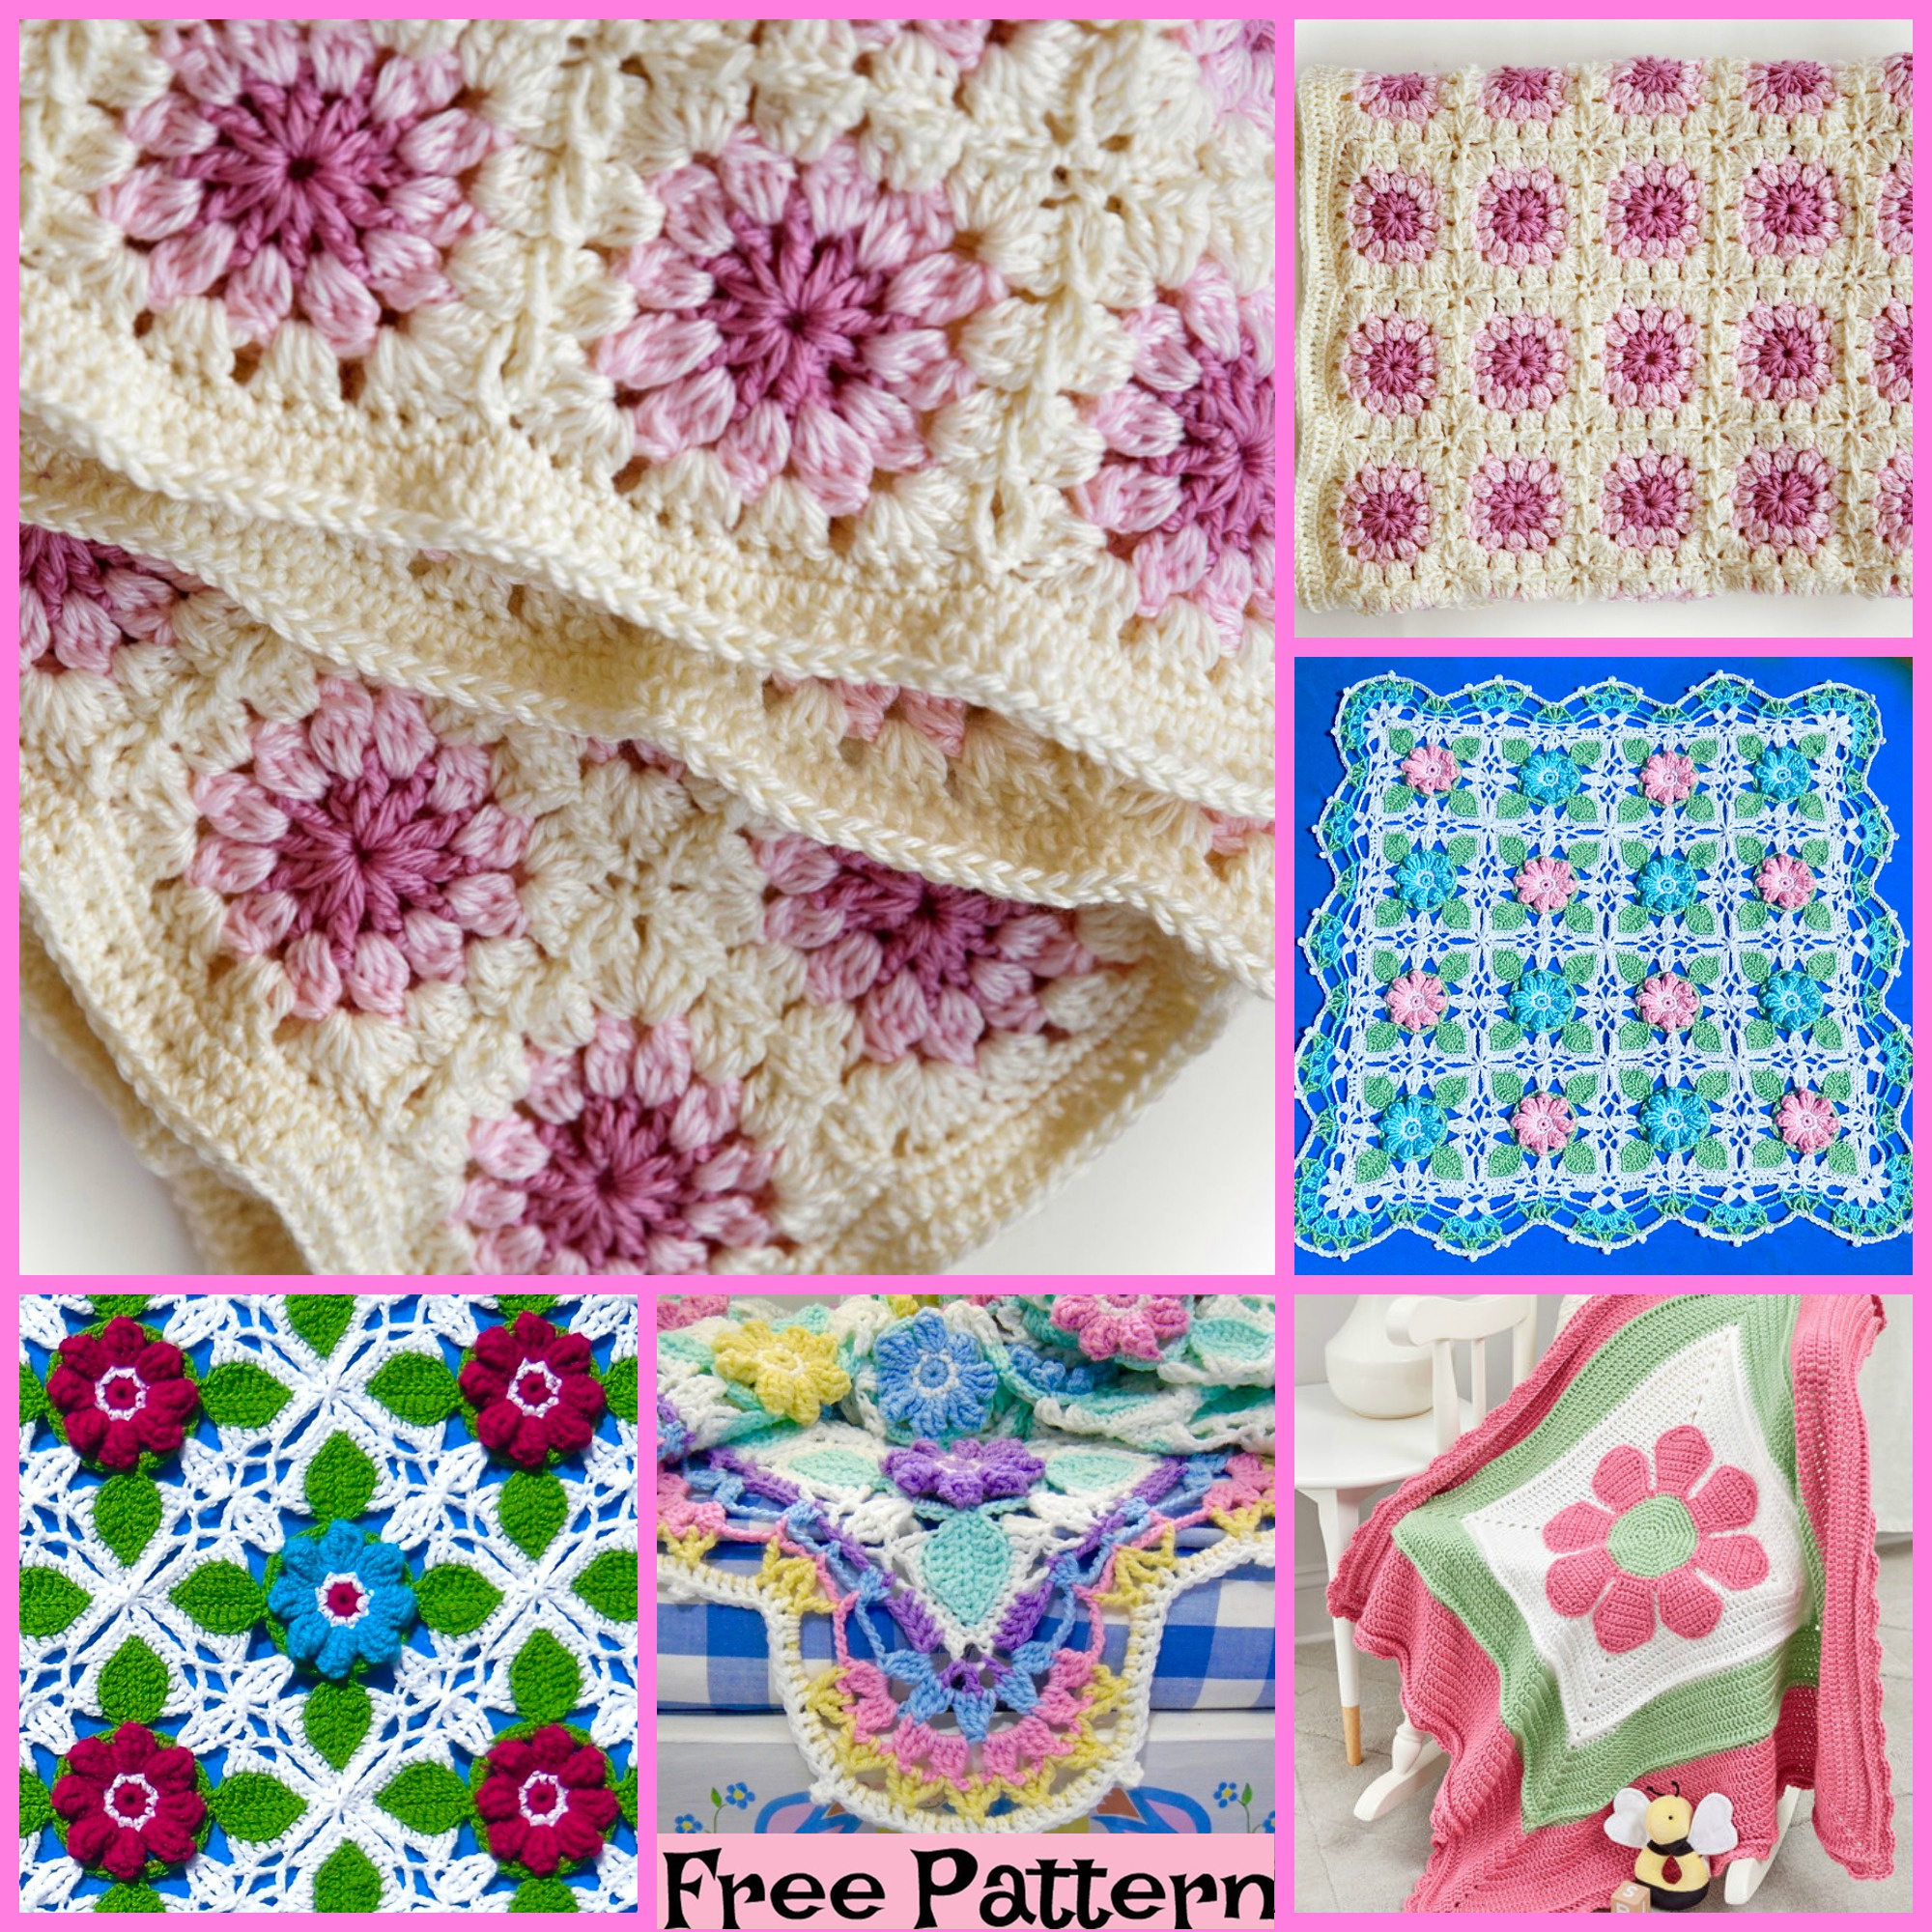 diy4ever-Crochet Bloom Throw Blankets - Free Patterns